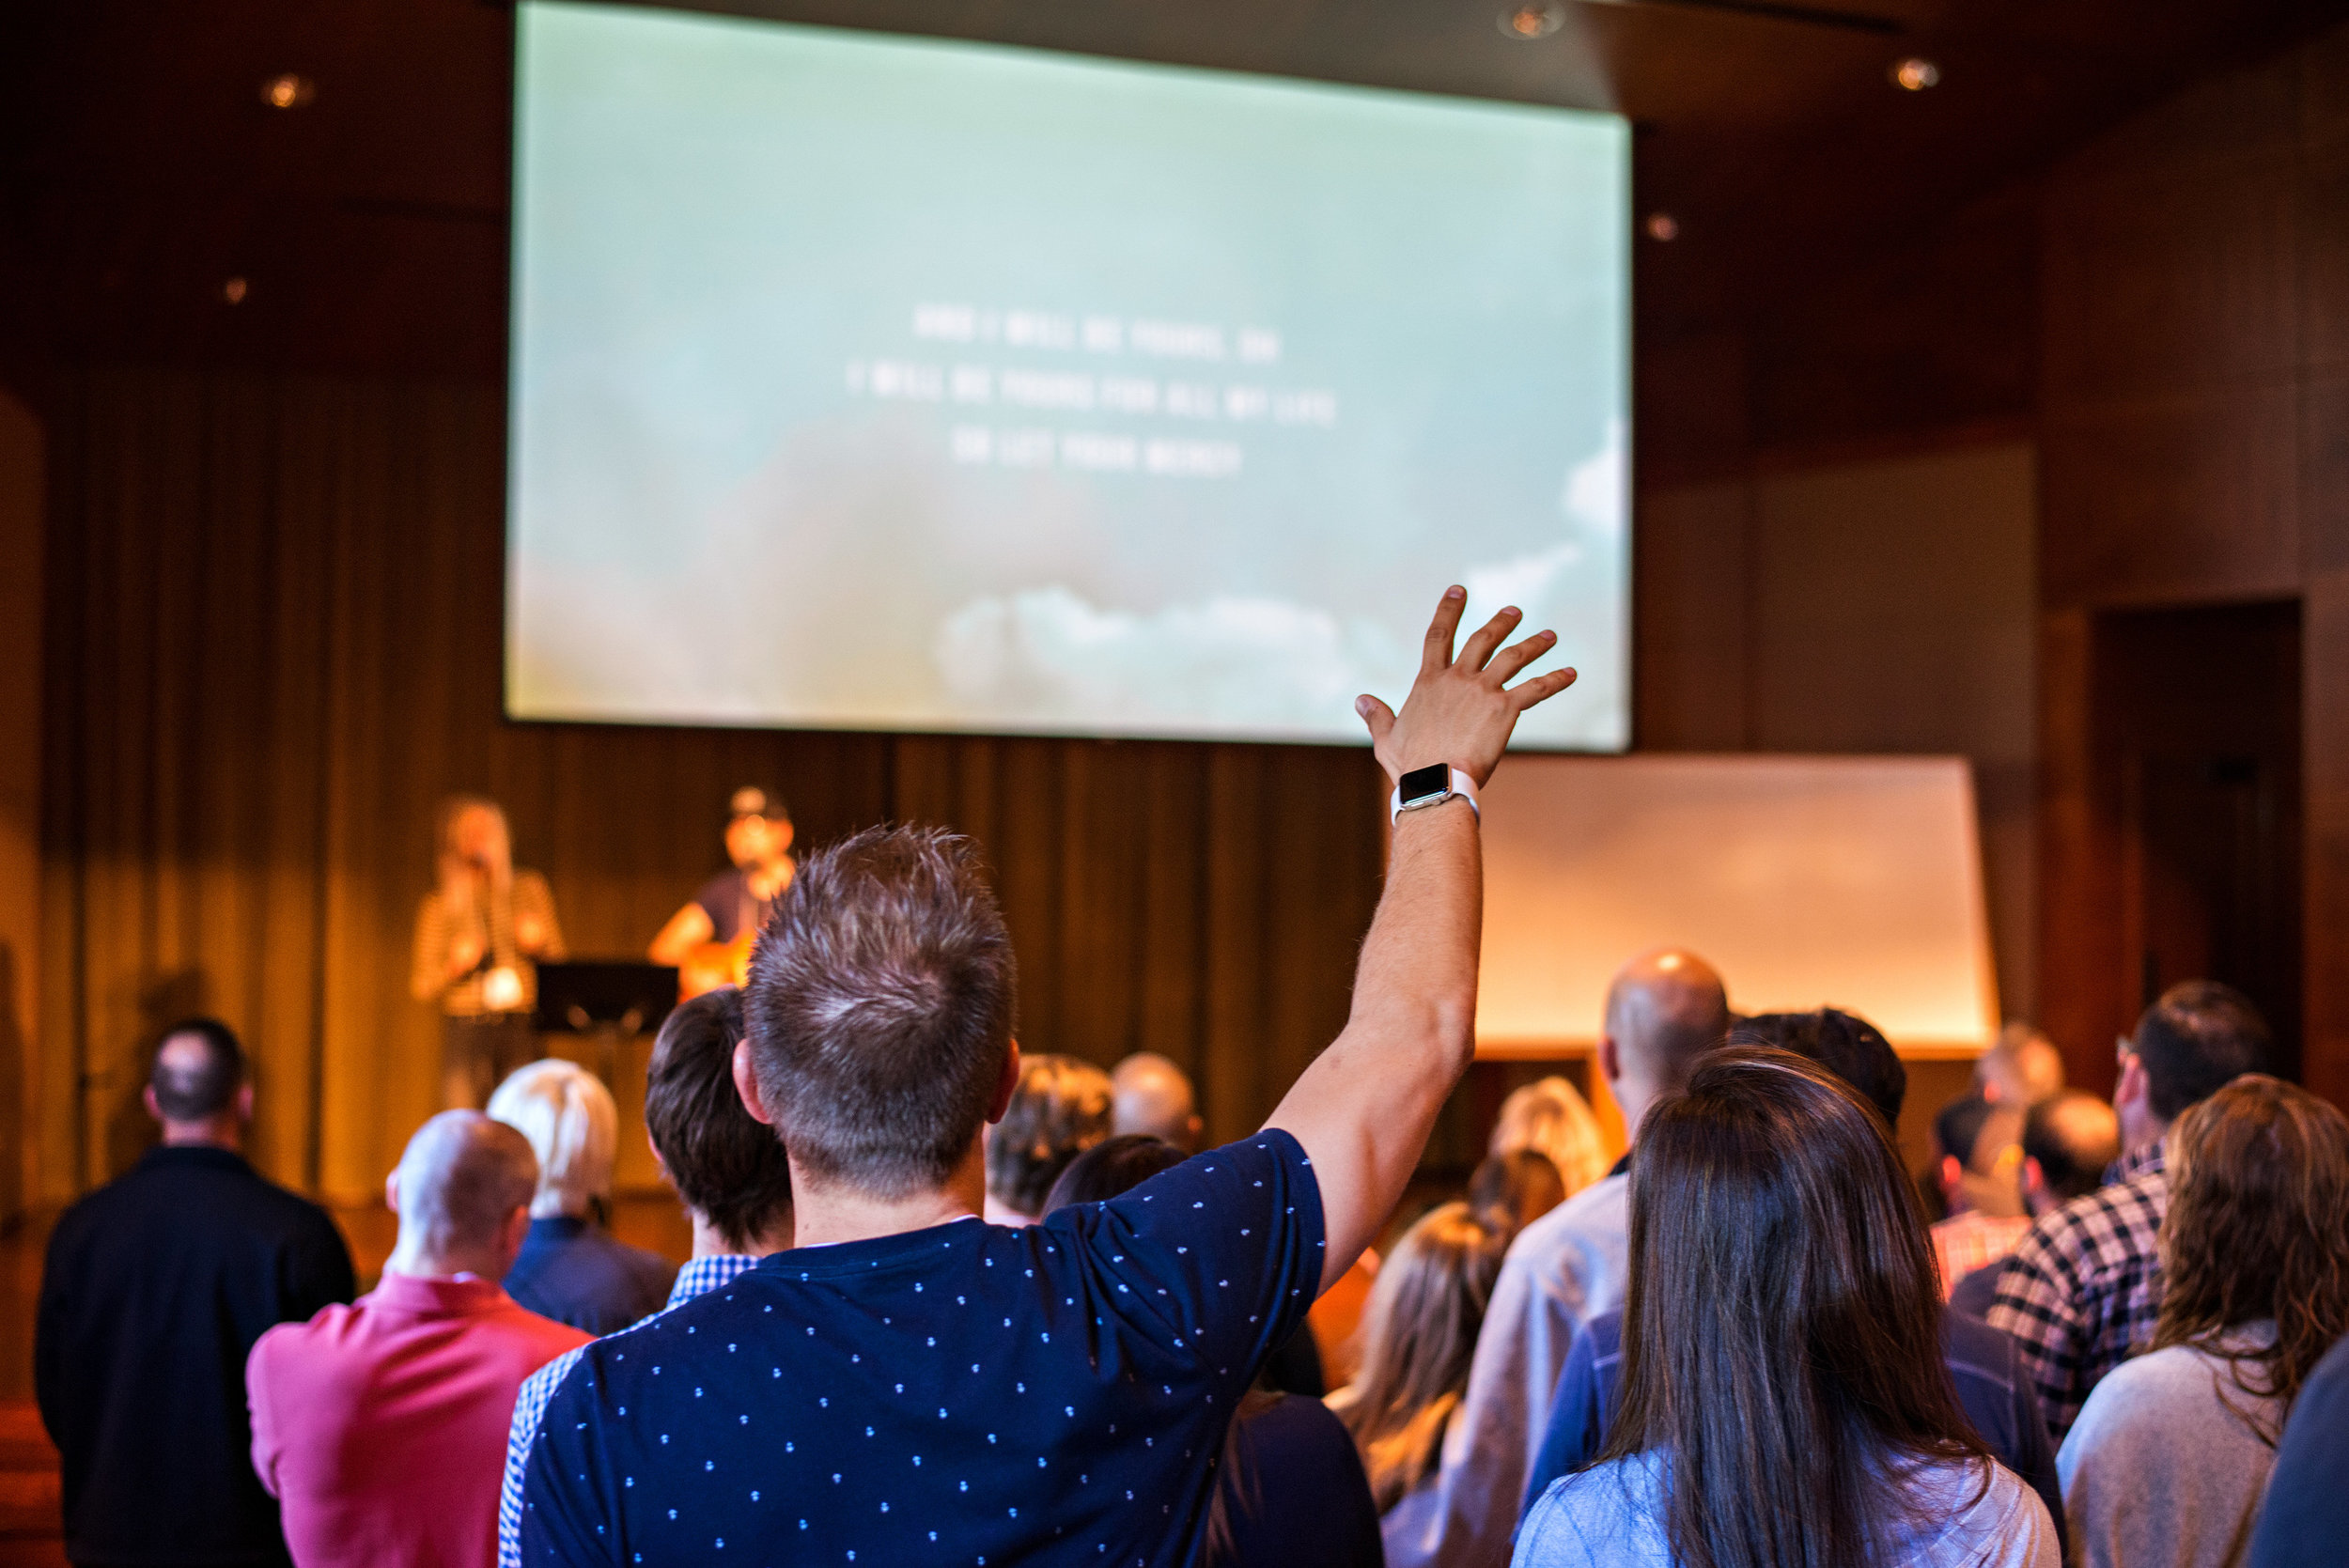 A shot captured by Allen and Carol Photography. Love seeing my man worship the Lord! And now, we can see what we look like from the back of our heads too. :)